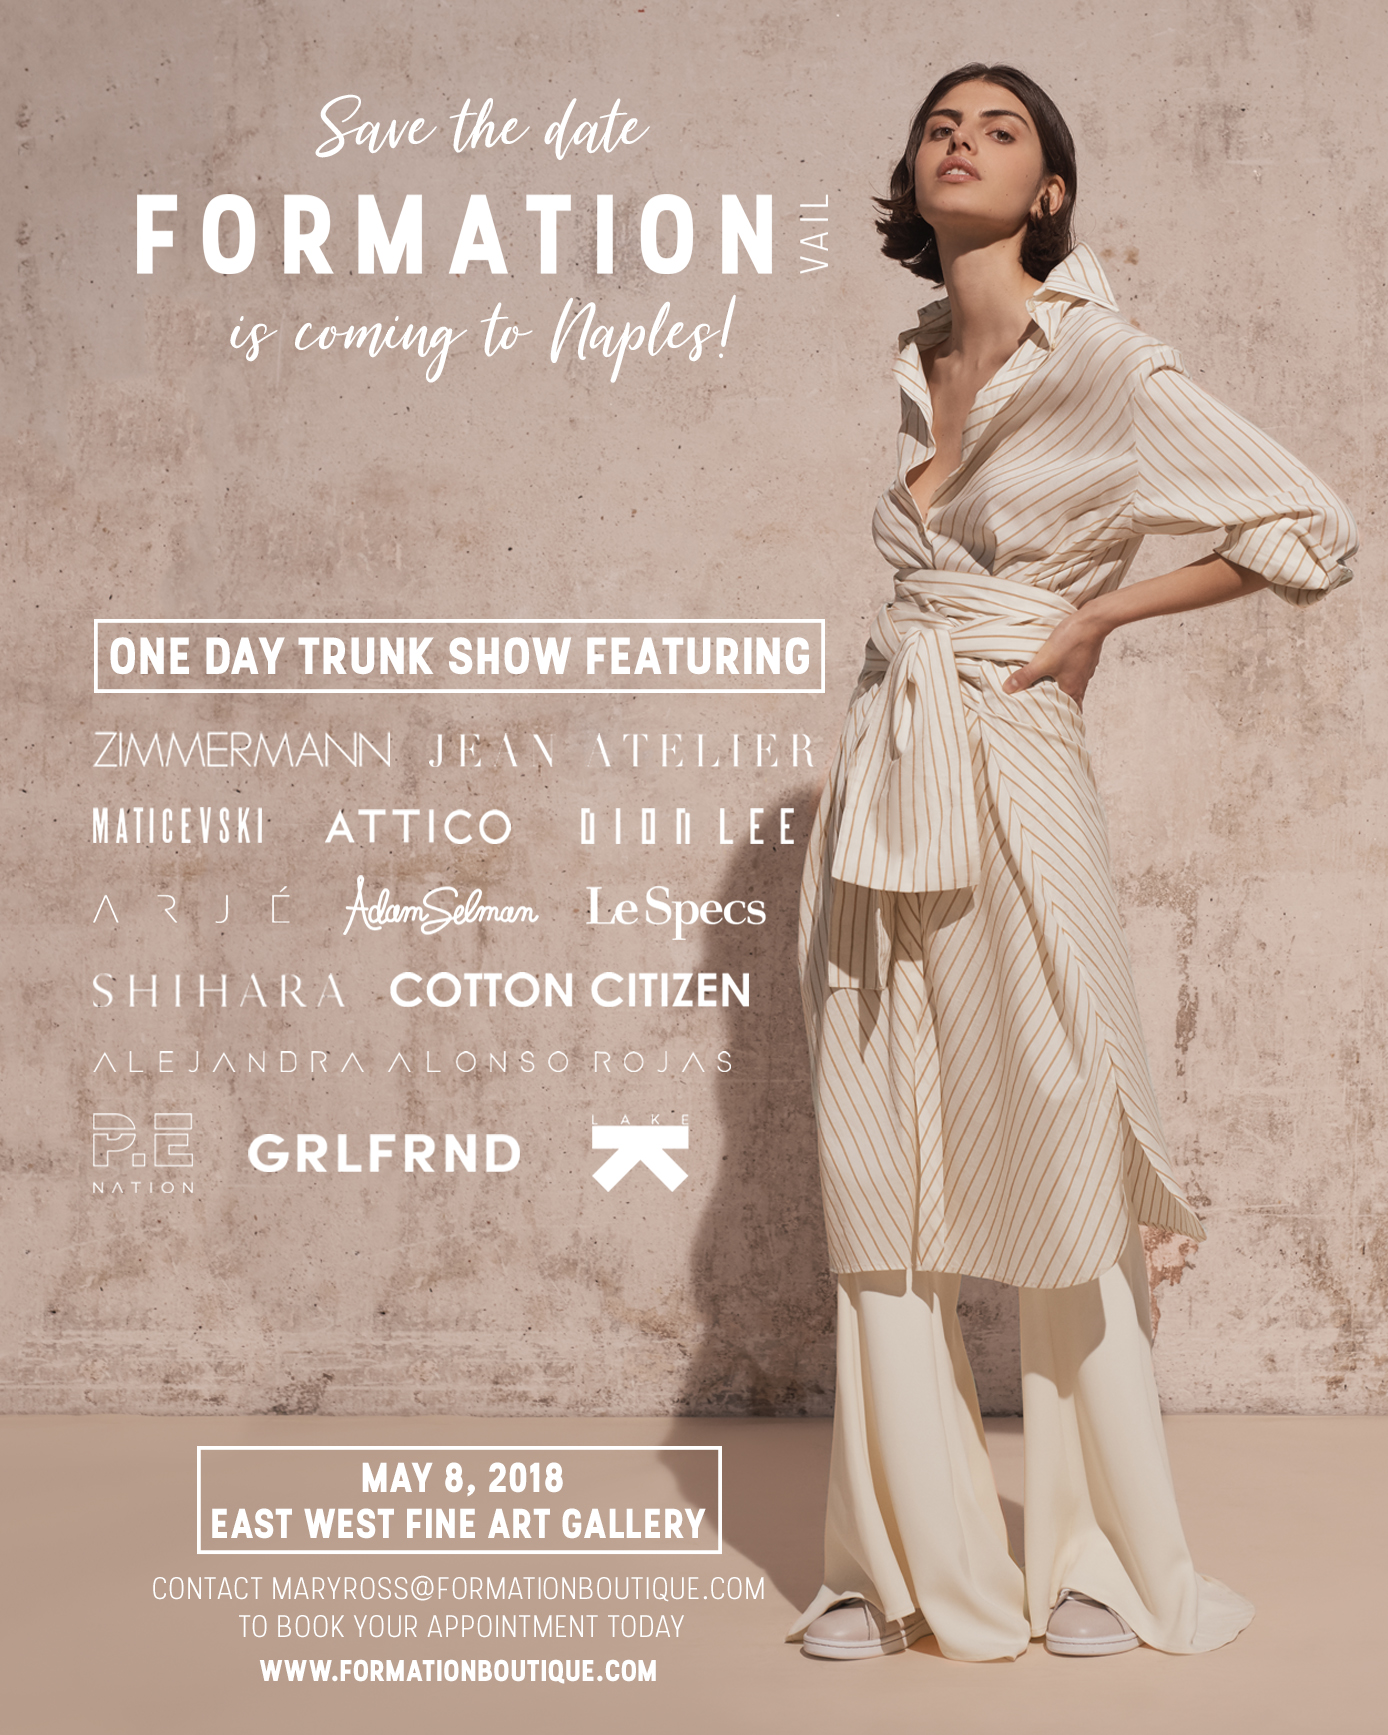 Formation Boutique Naples Trunk Show